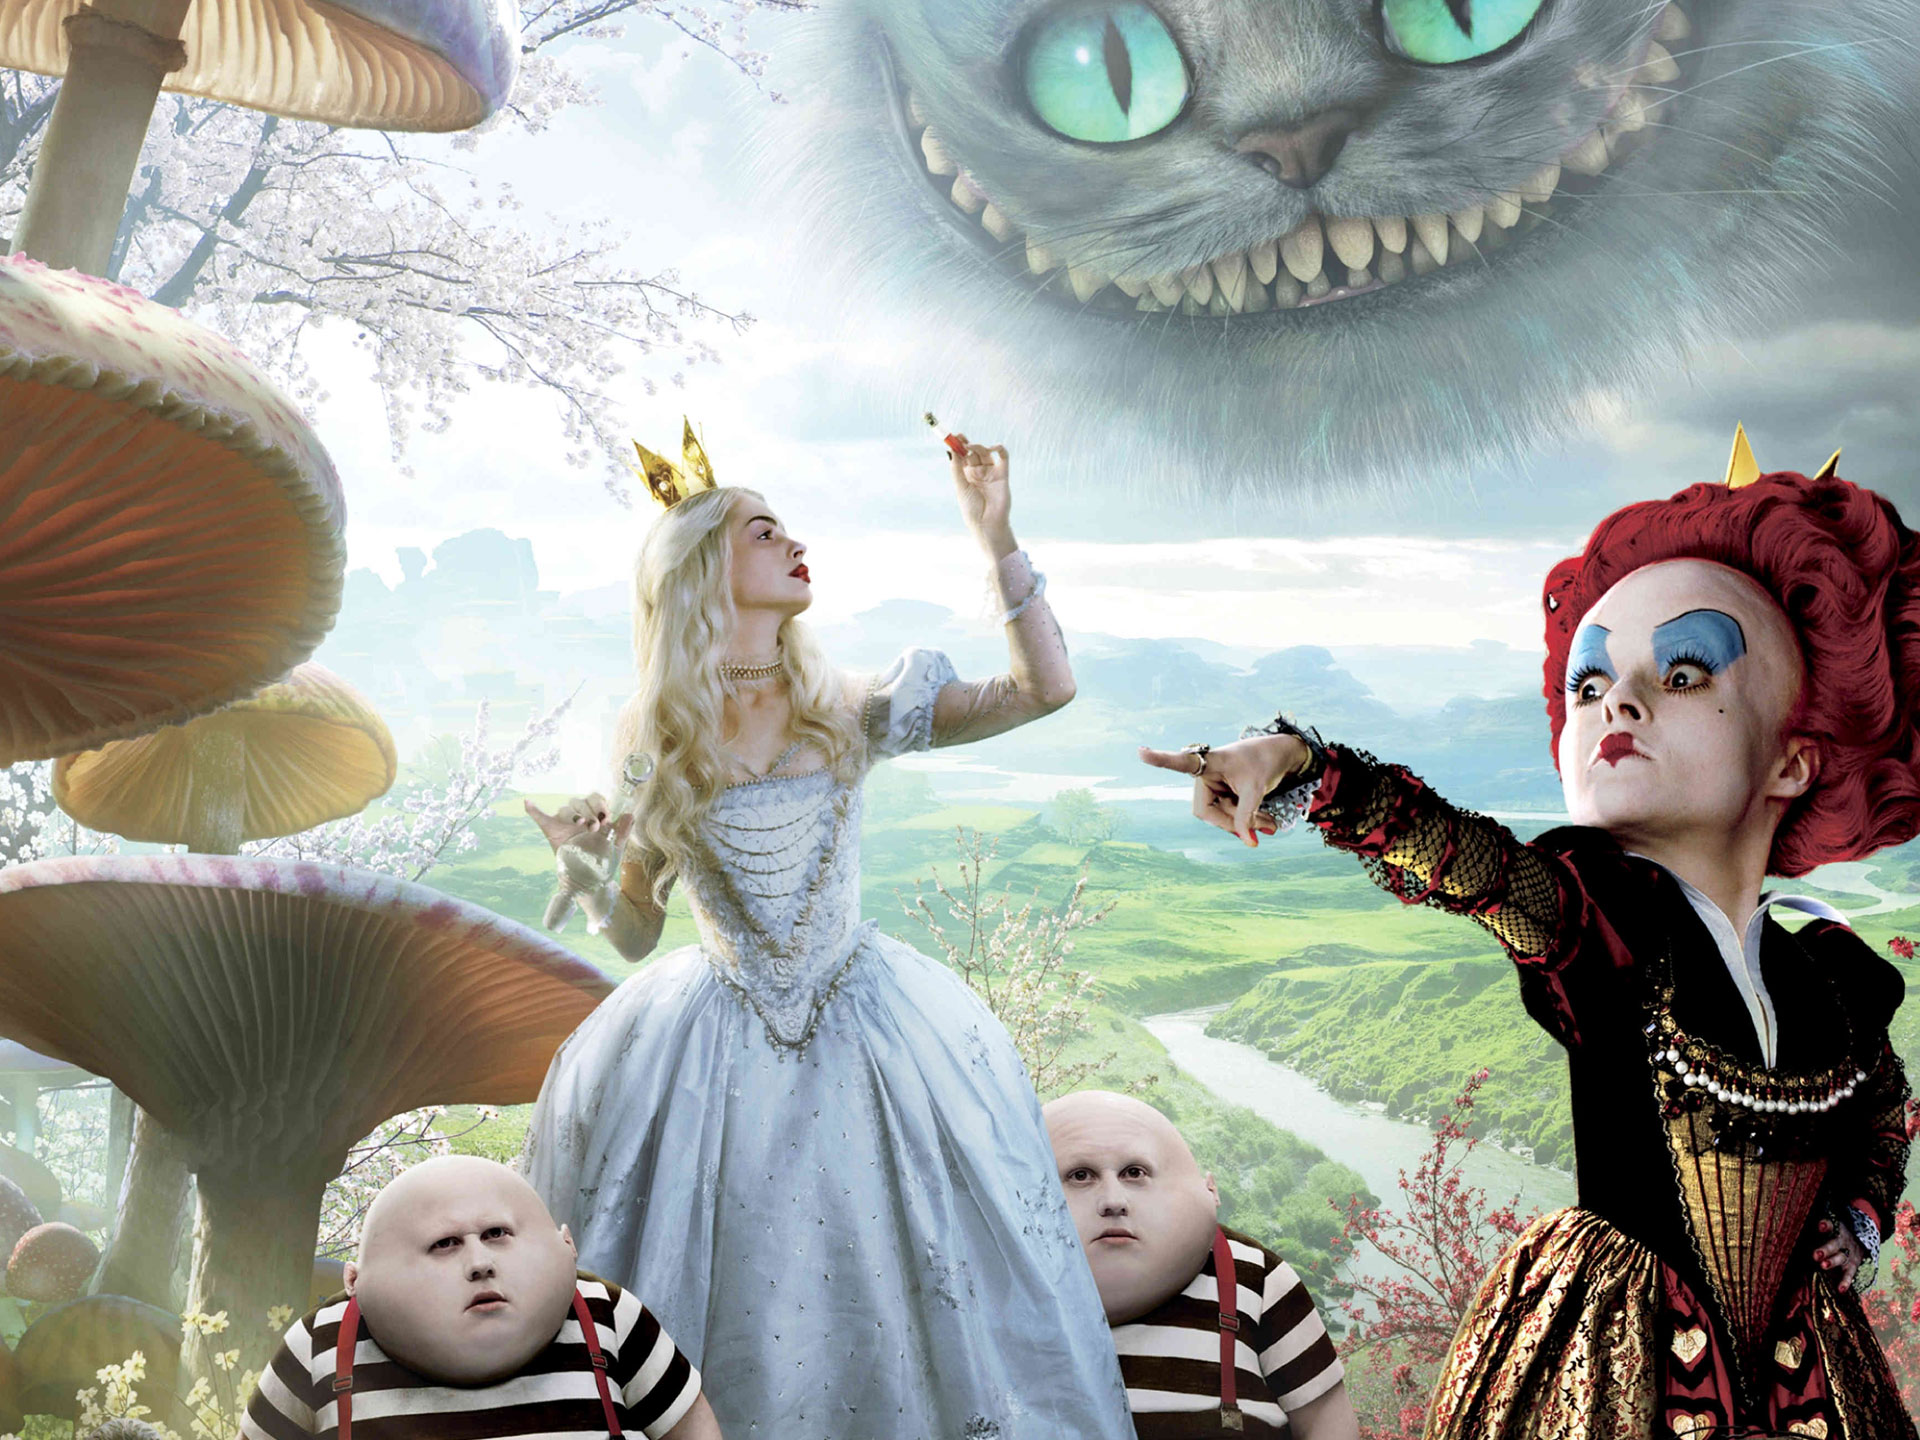 2010 Alice in Wonderland 557.66 Kb